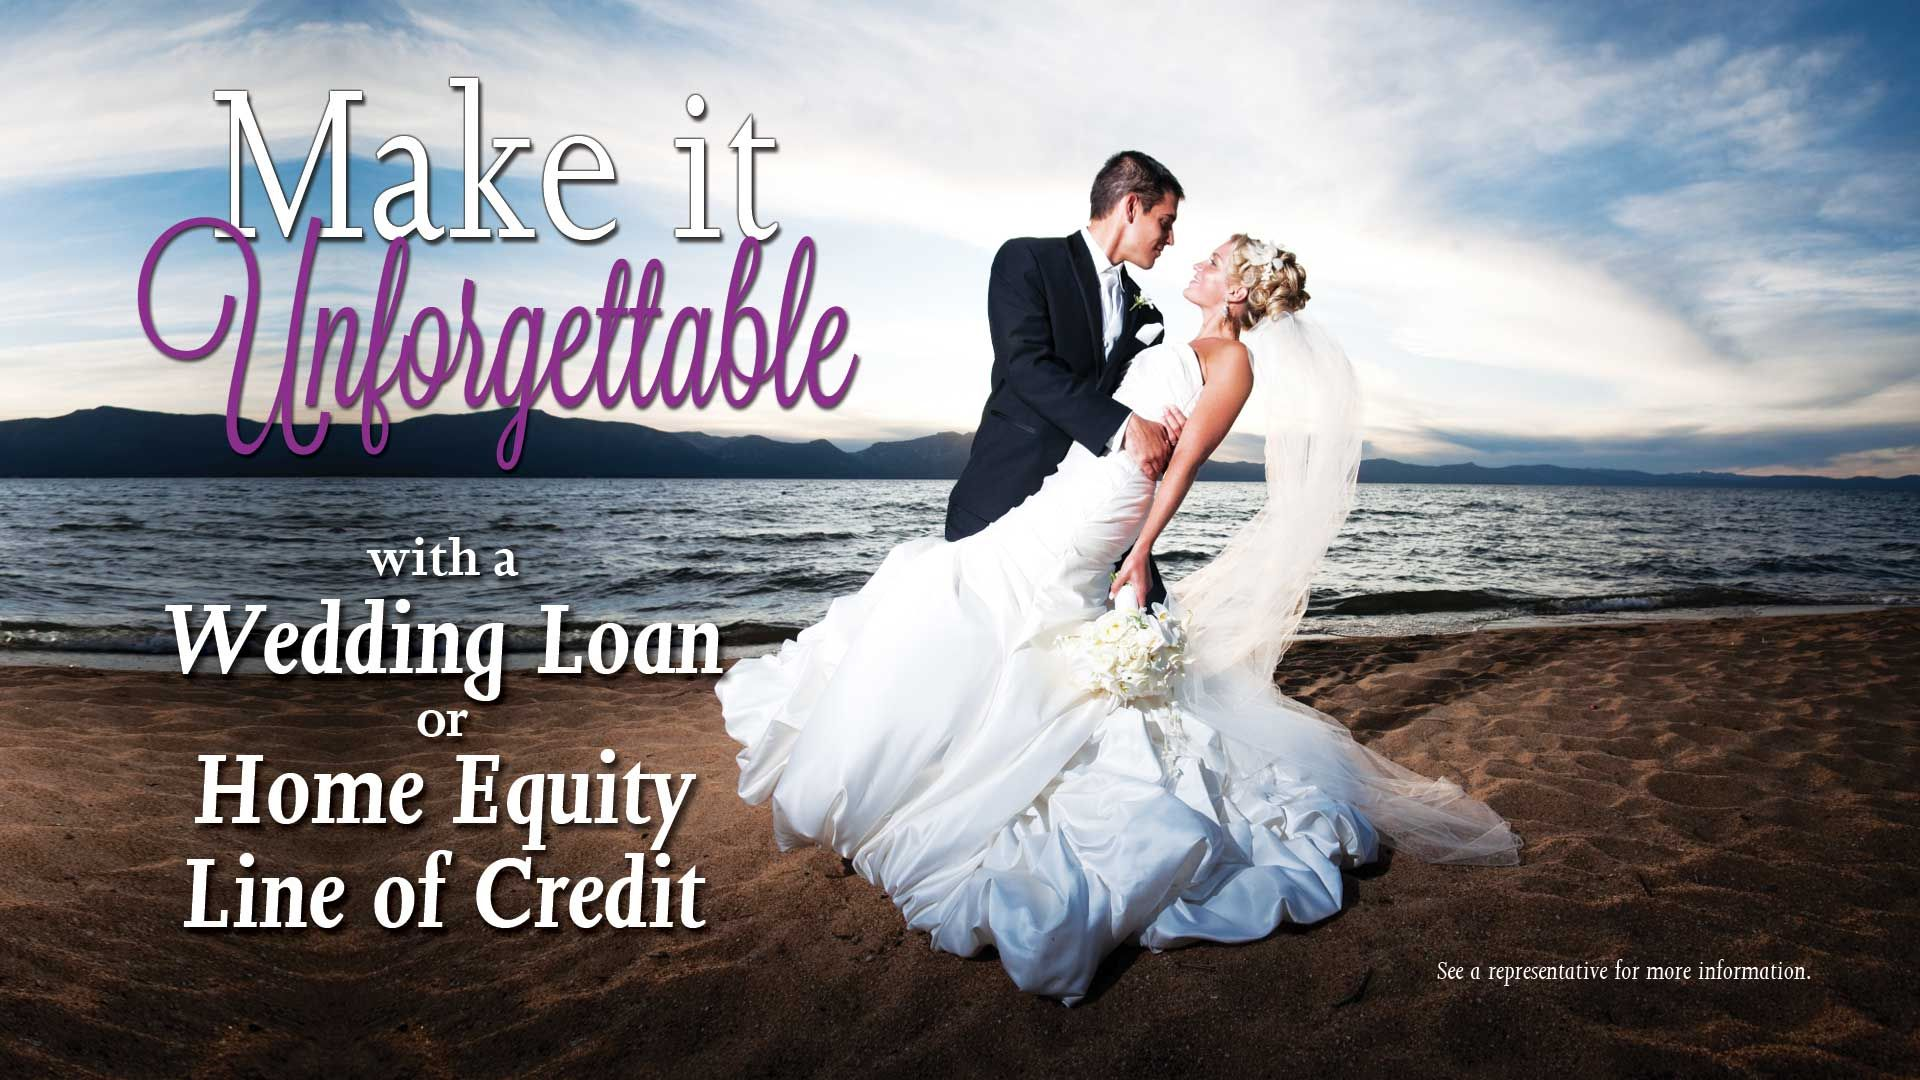 Personal Loans St Louis Chesterfield St Charles Mo Fccu Wedding Loans Personal Loans Loan